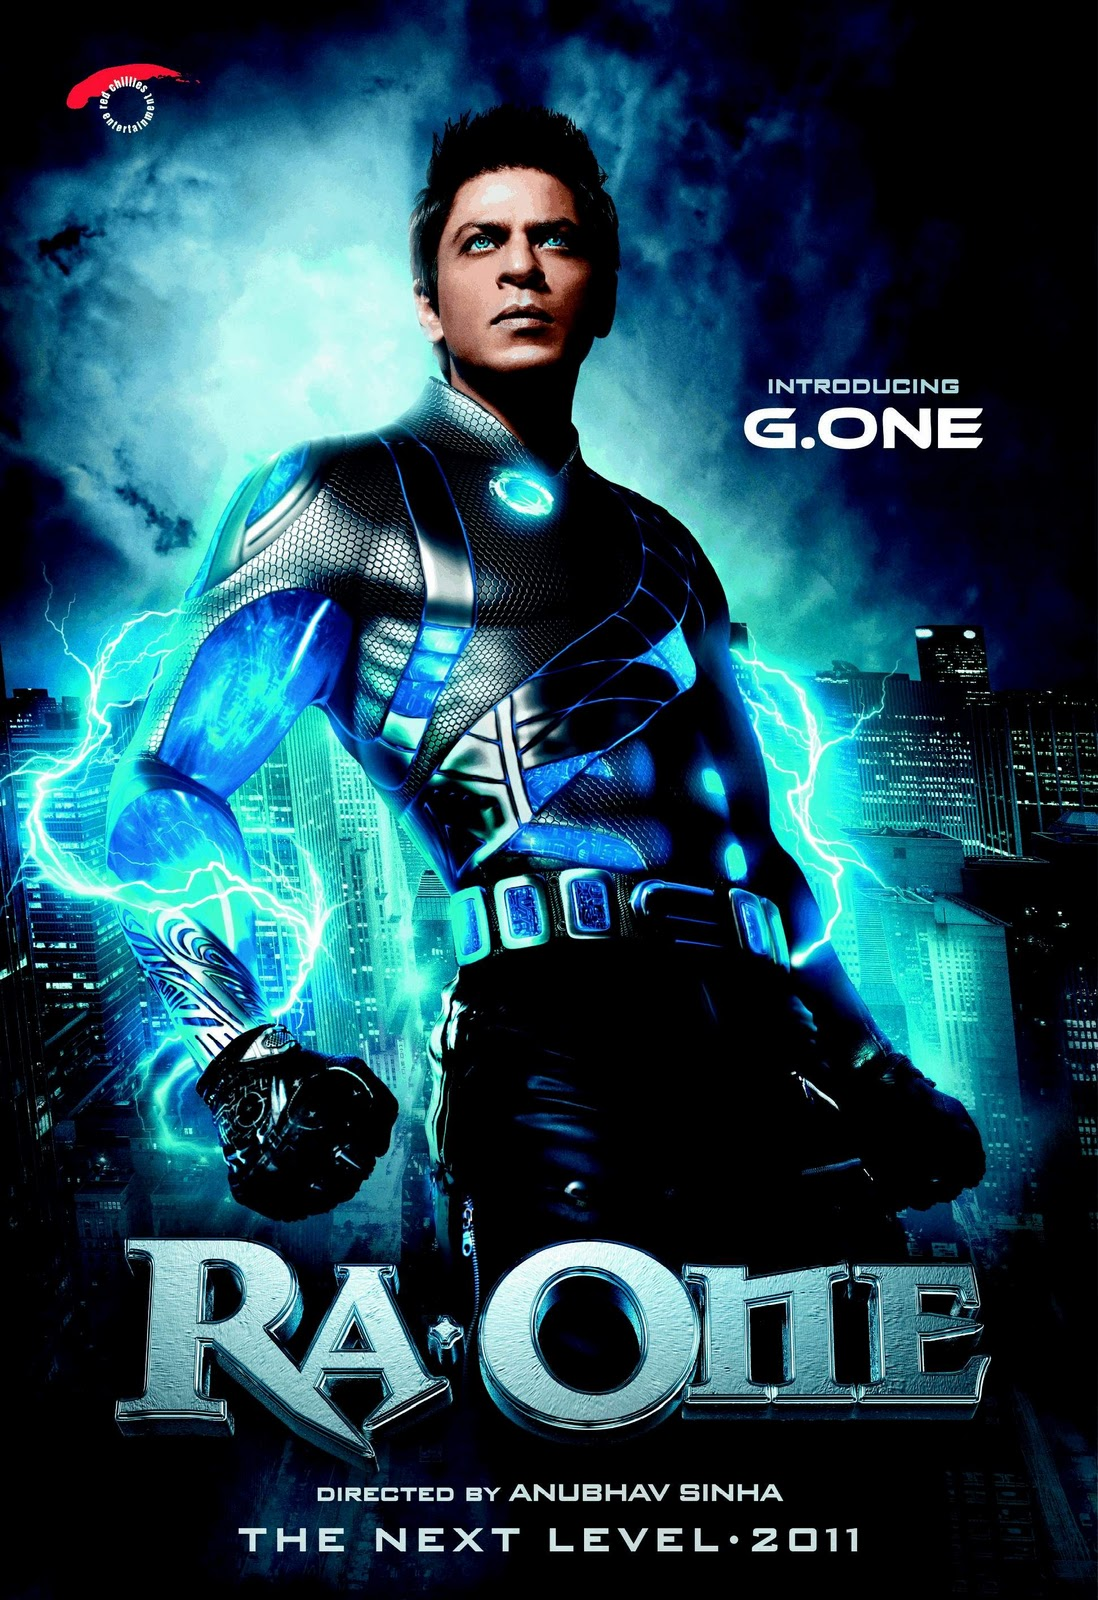 http://danieldokter.files.wordpress.com/2011/10/ra-one.jpg